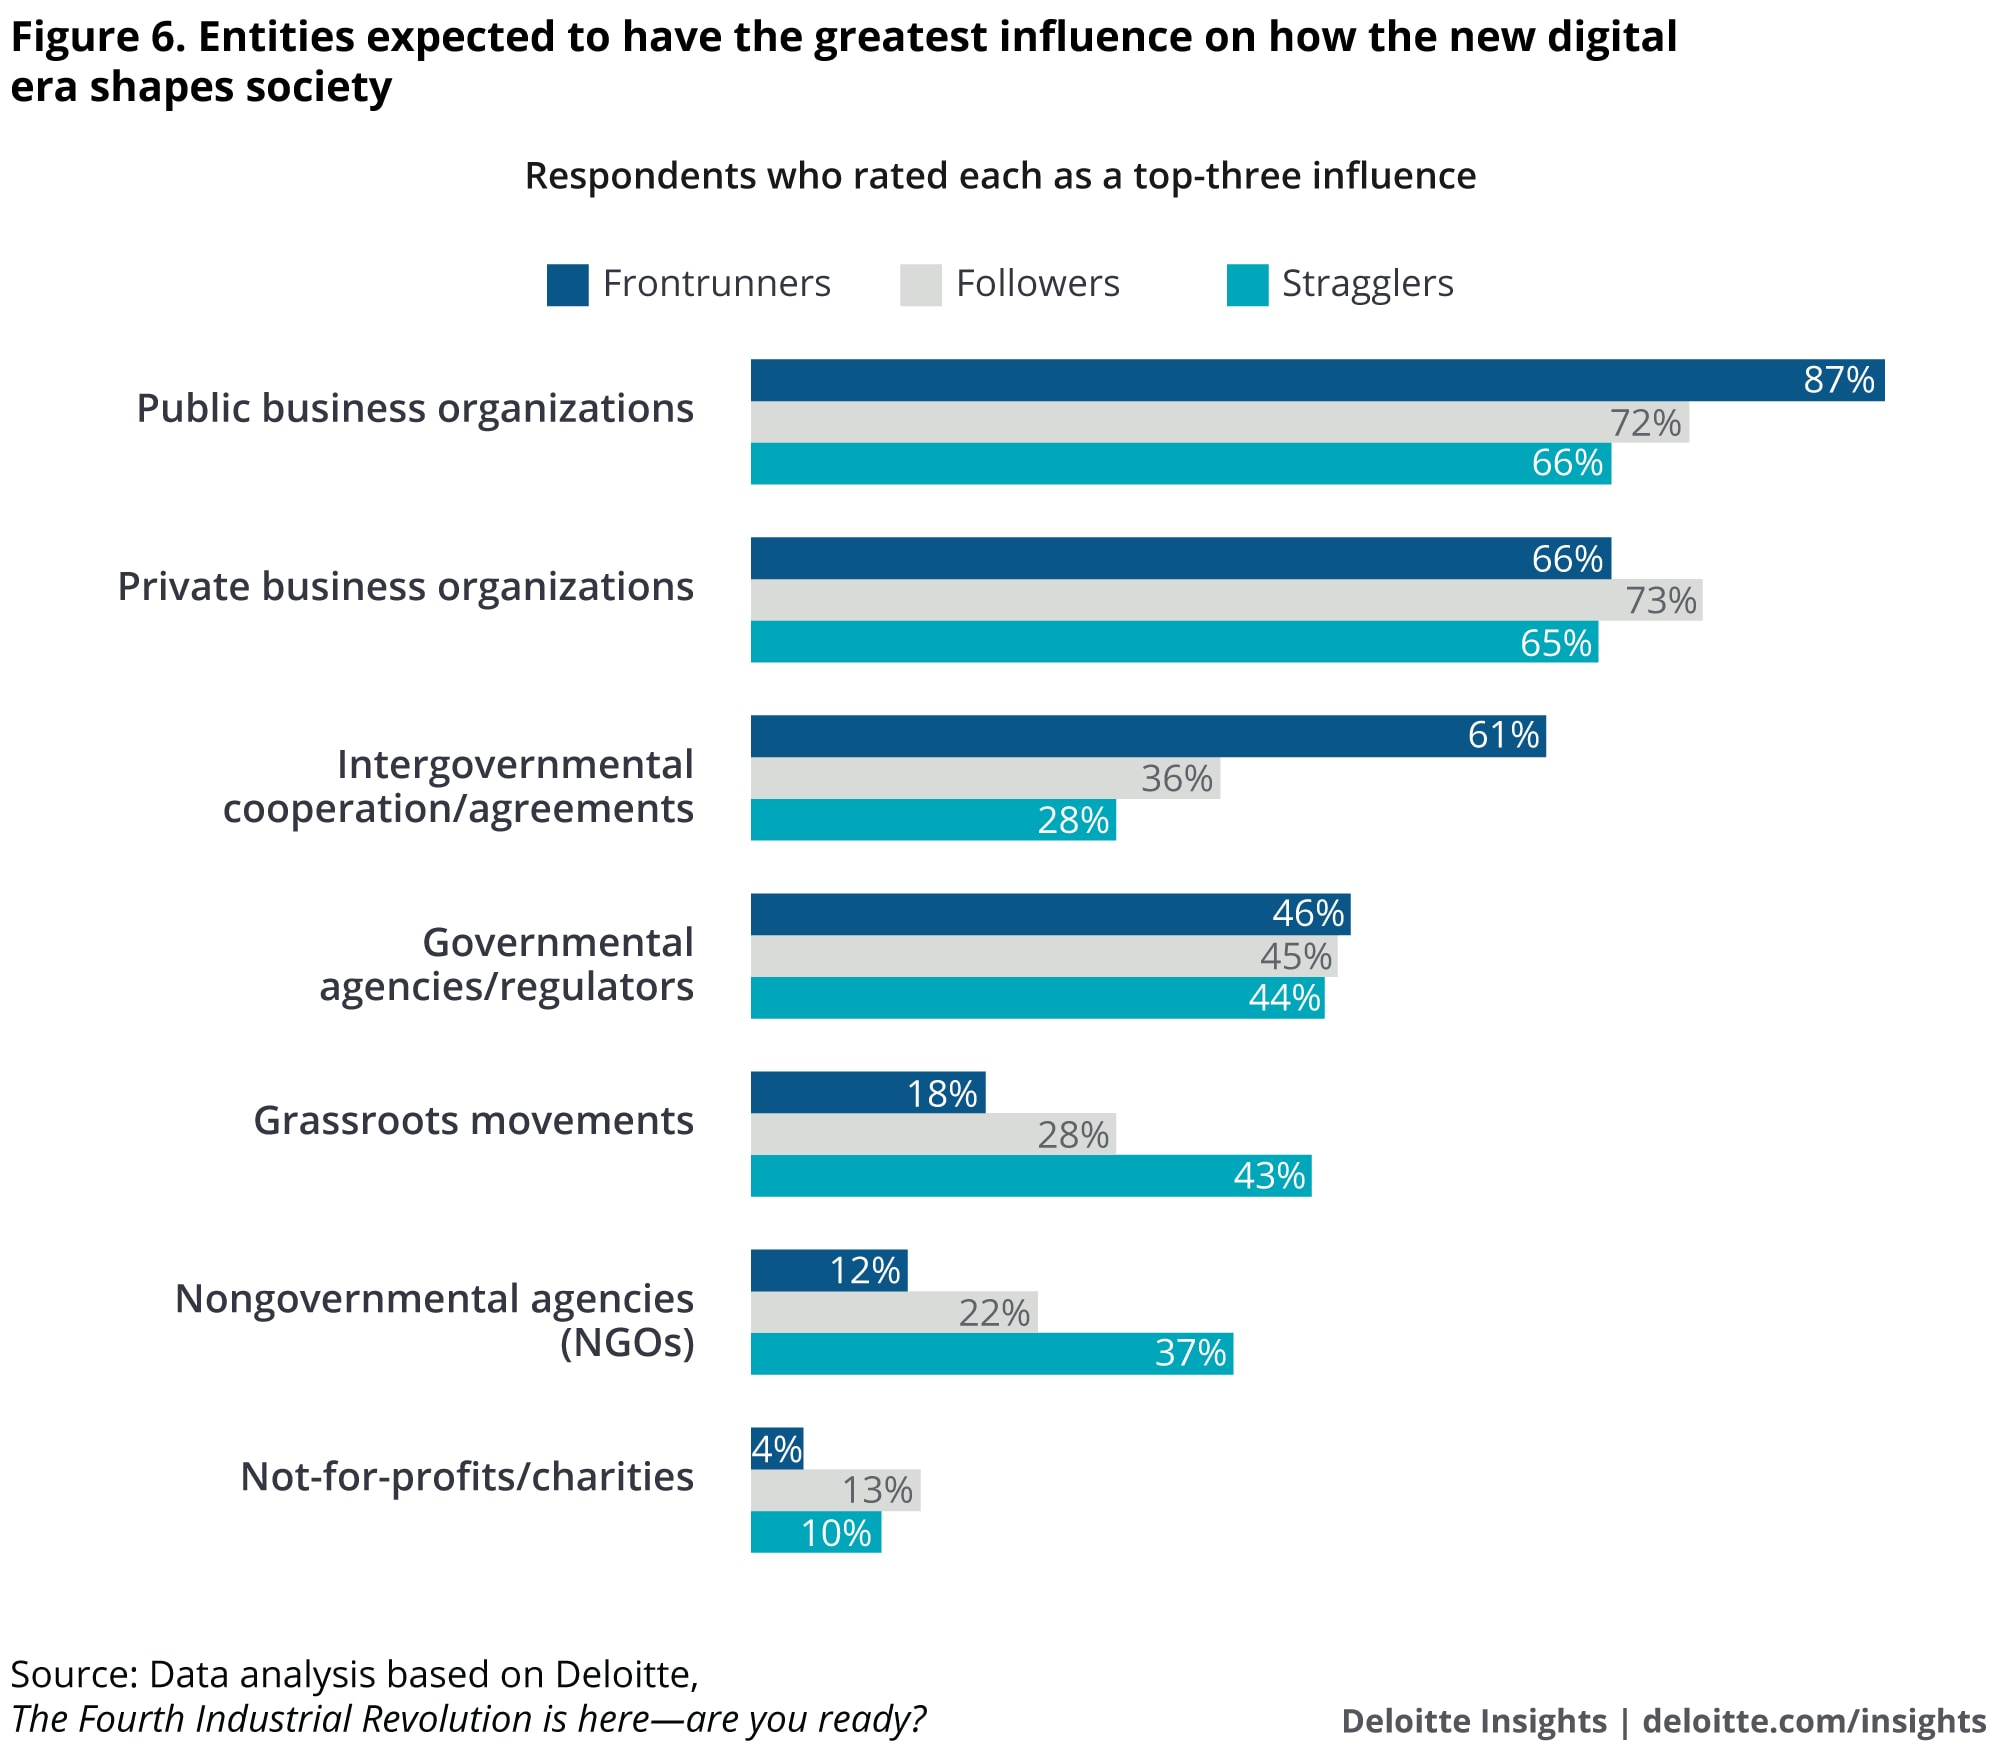 Entities expected to have the greatest influence on how the new digital era shapes society